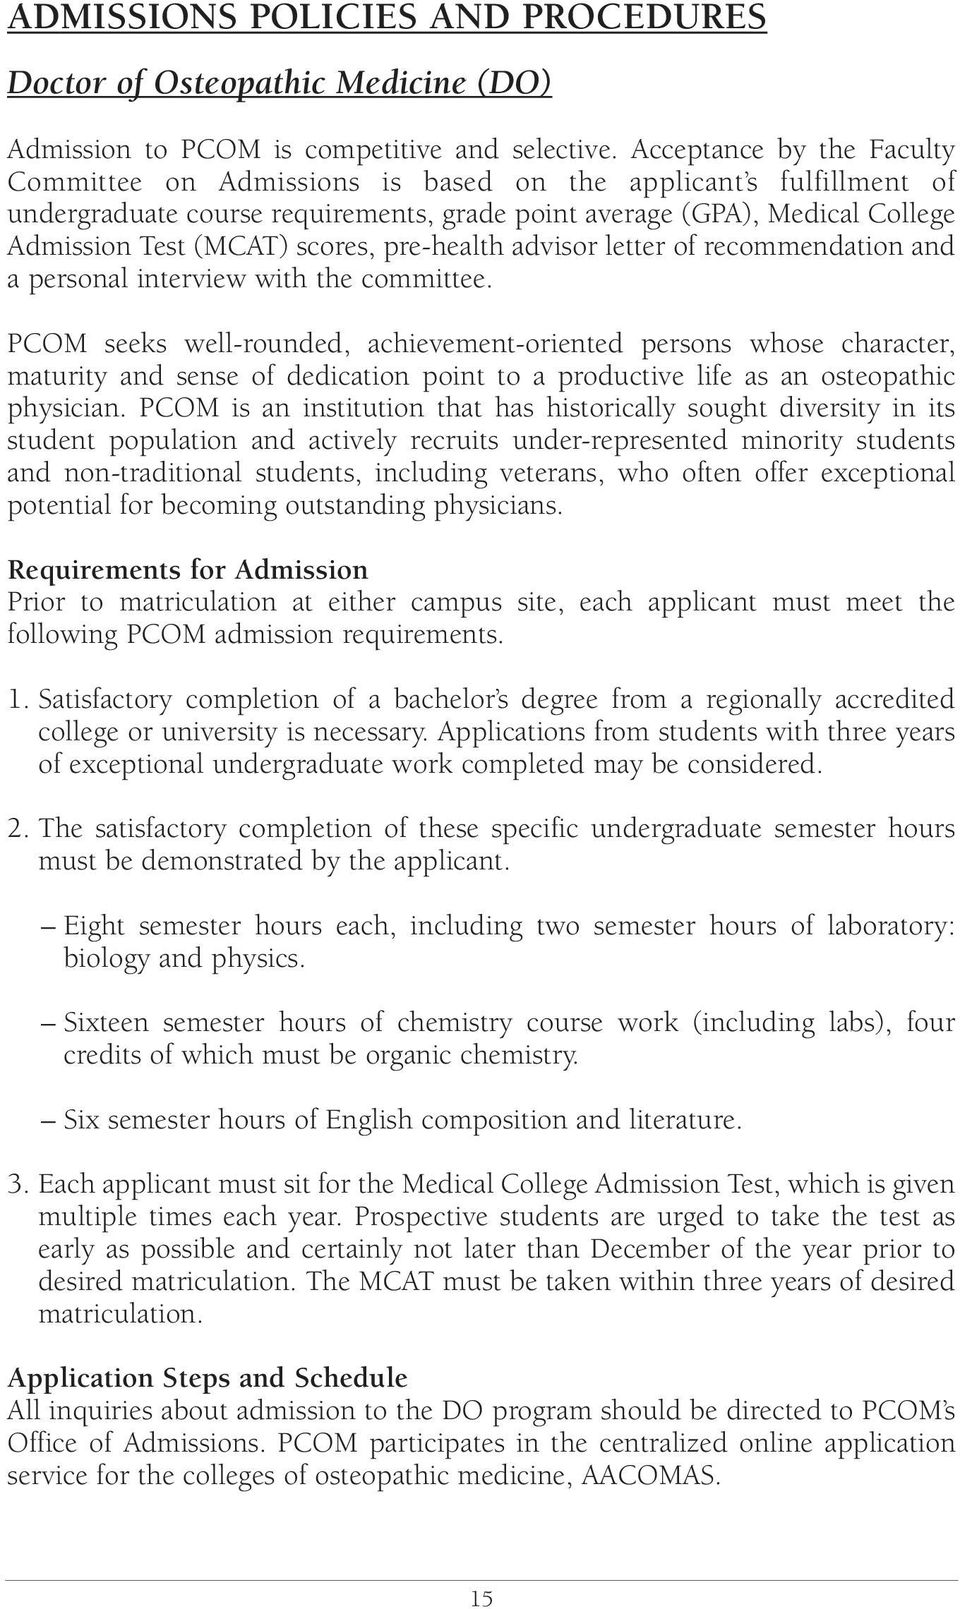 Free Professional Resume » aacomas letter of recommendation ...